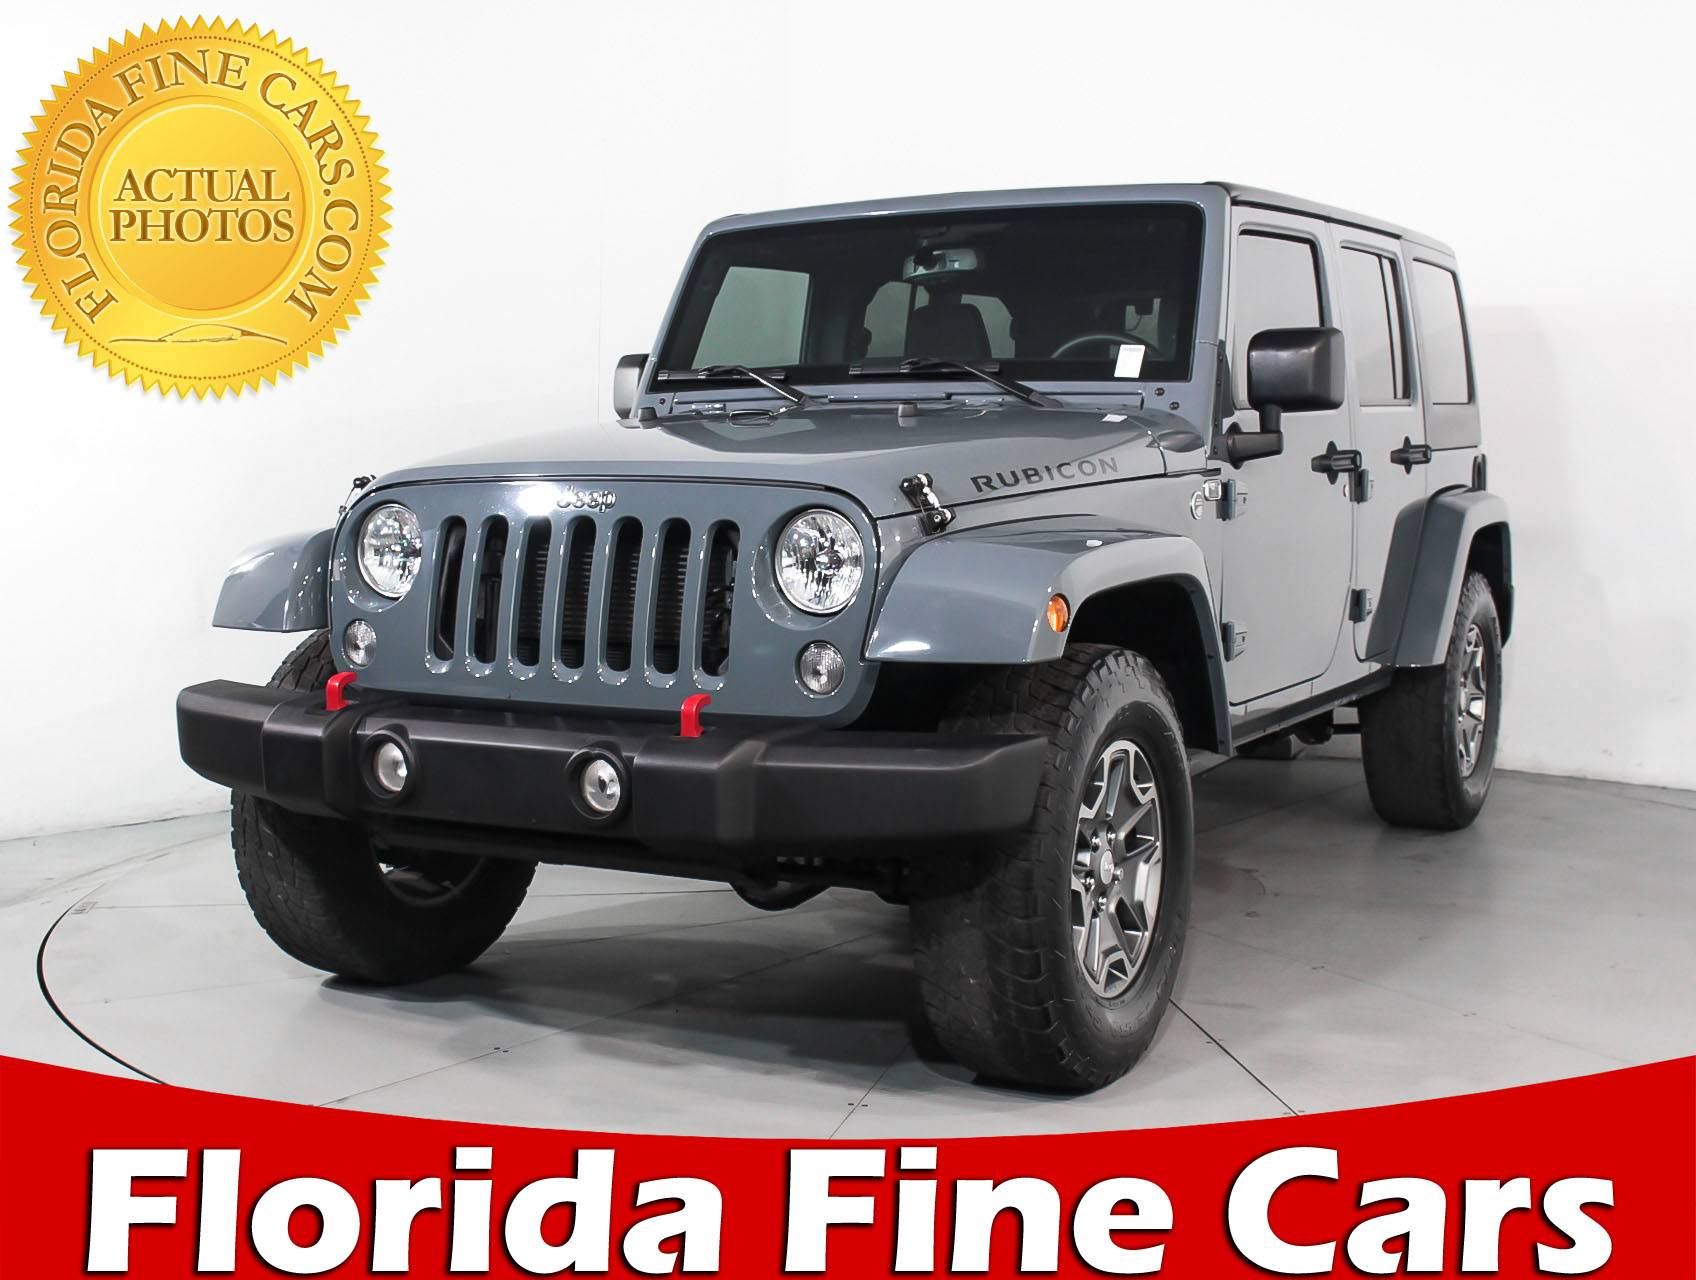 Used 2015 JEEP WRANGLER UNLIMITED RUBICON SUV For Sale In MIAMI, FL | 90852  | Florida Fine Cars